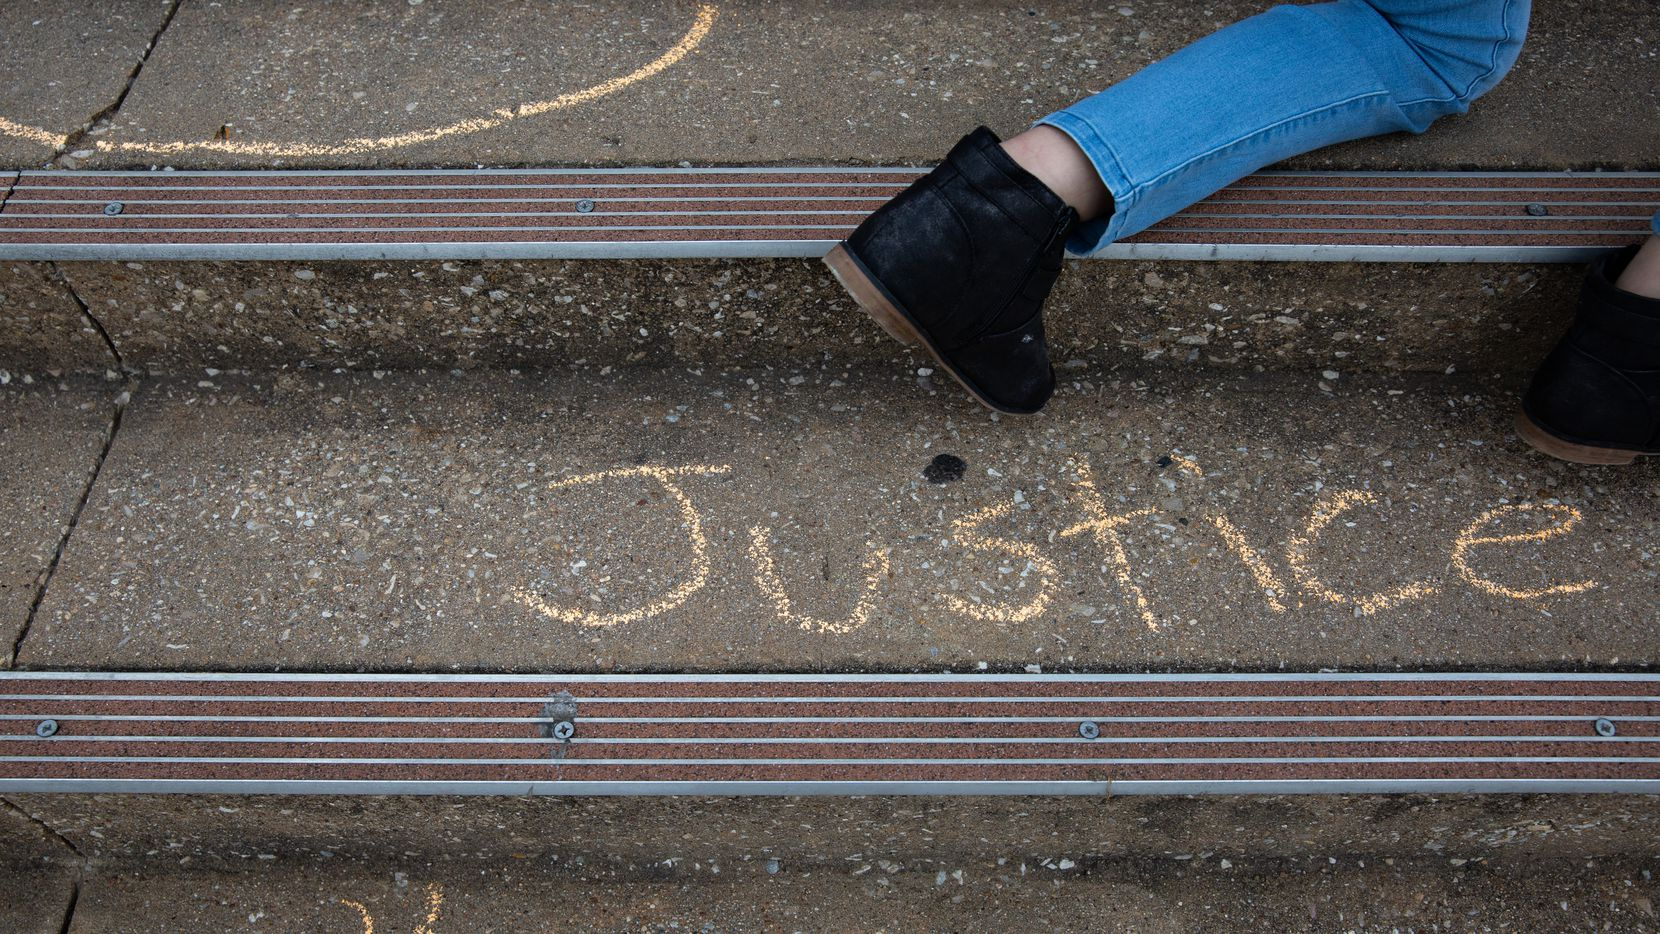 Demonstrators write with chalk on the stairs leading up to the Collin County Courthouse following a press conference on April 28, 2021 including updates on Marvin Scott III's death. Last week, the Fort Worth Star-Telegram broke news about another death in the jail.